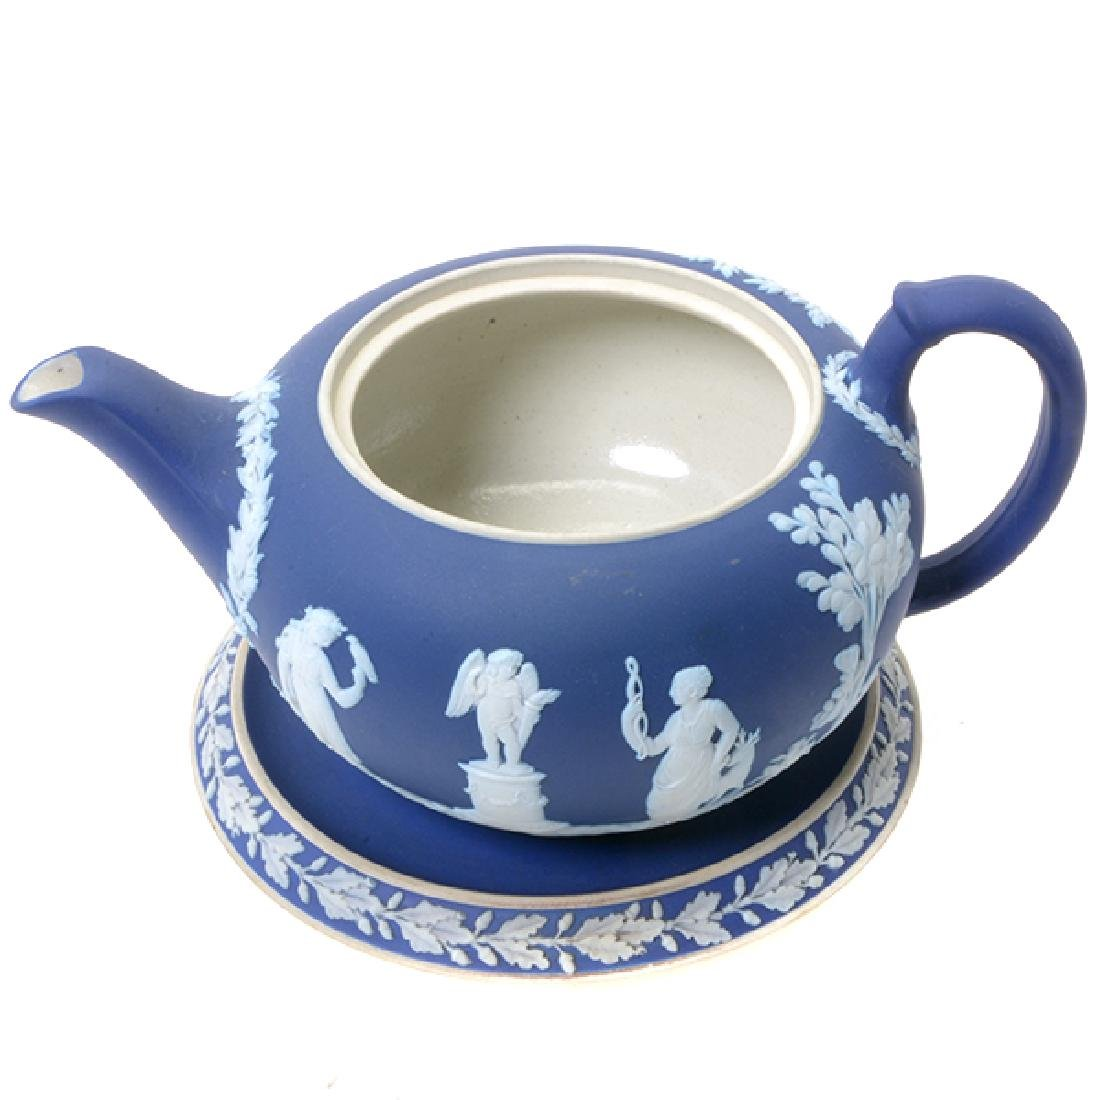 Collection of Wedgwood Jasperware Table Articles - 6